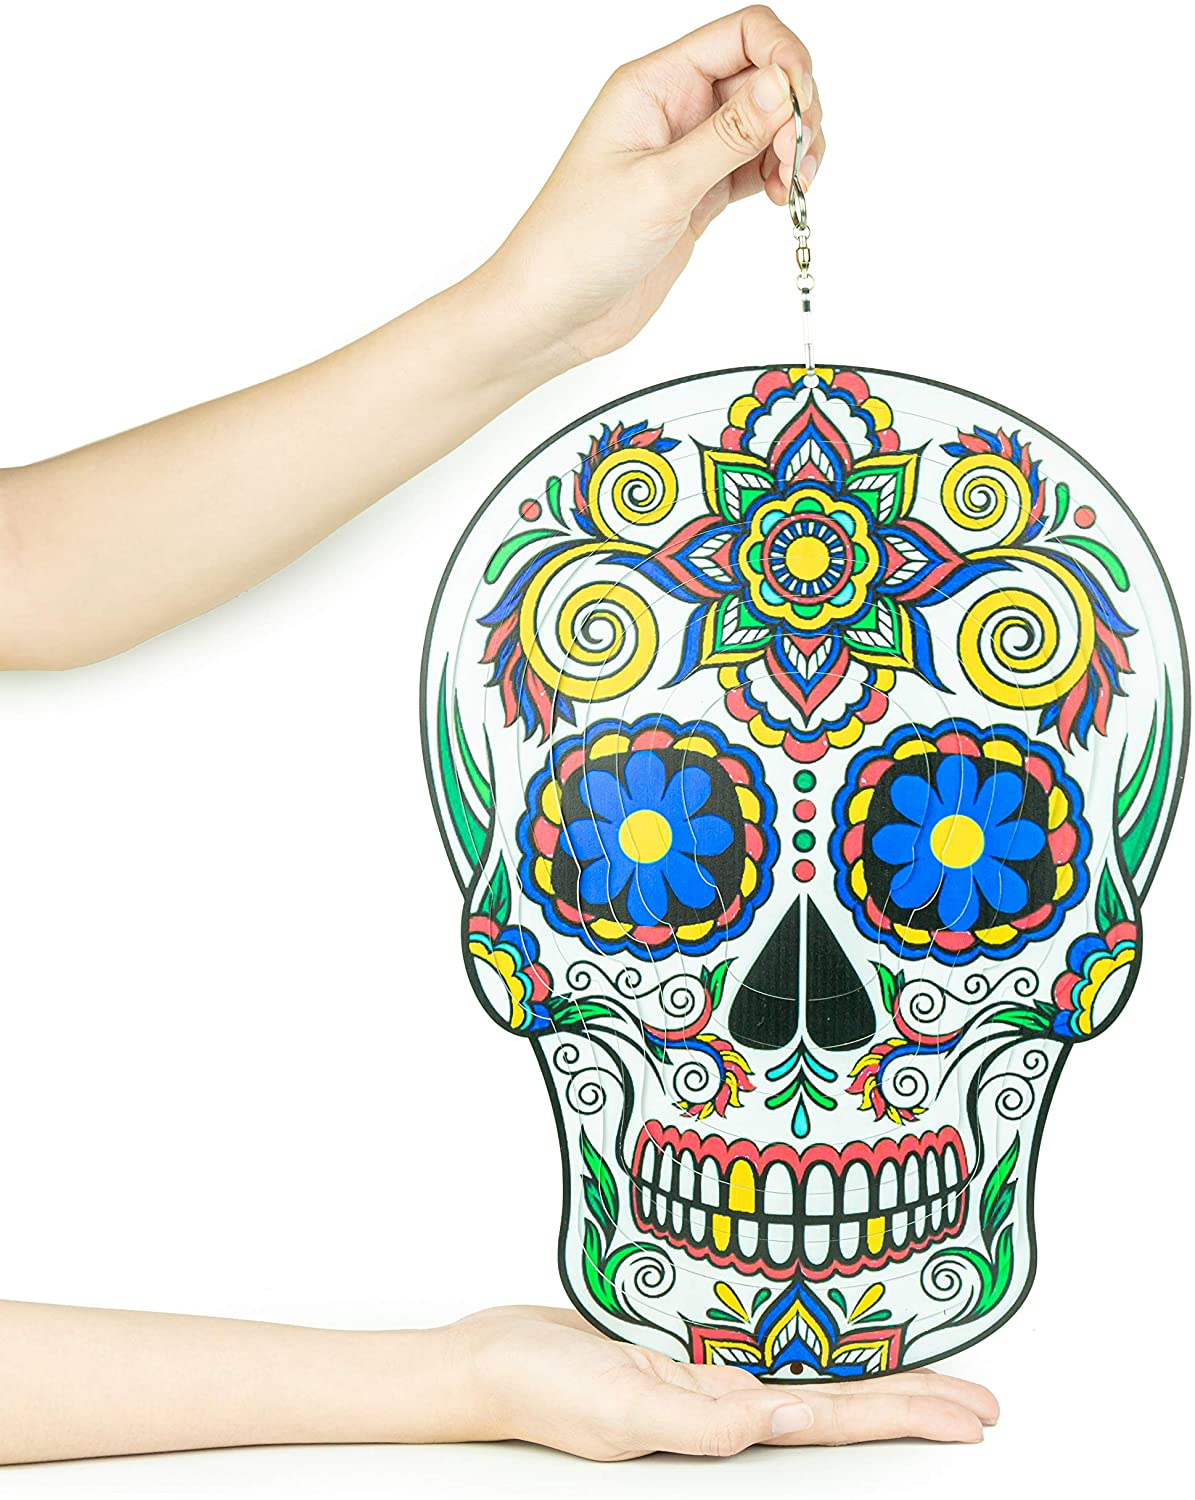 EchipTools Sugar Skull Wind Spinner Outdoor Metal Decorations 3D 12inch Quality Hanging Ornament for Home and Garden Décor - Mandala Silver Wind Spinners - Calavera Sugar Skull Decorations